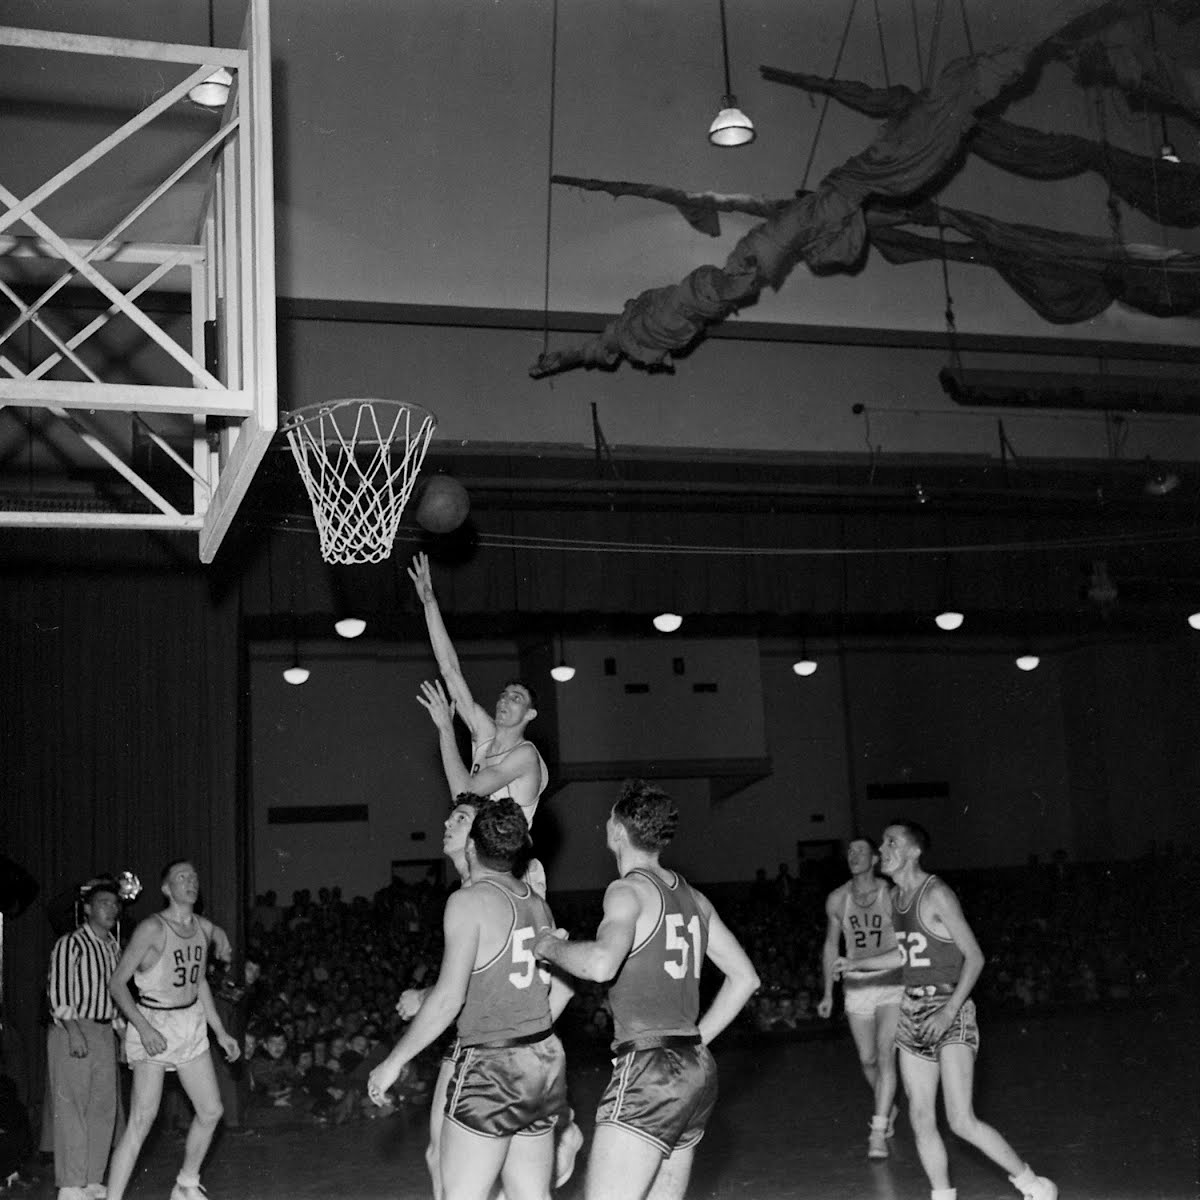 High Scoring Basketball Star Bevo Francis At Rio Grande College, Ohio